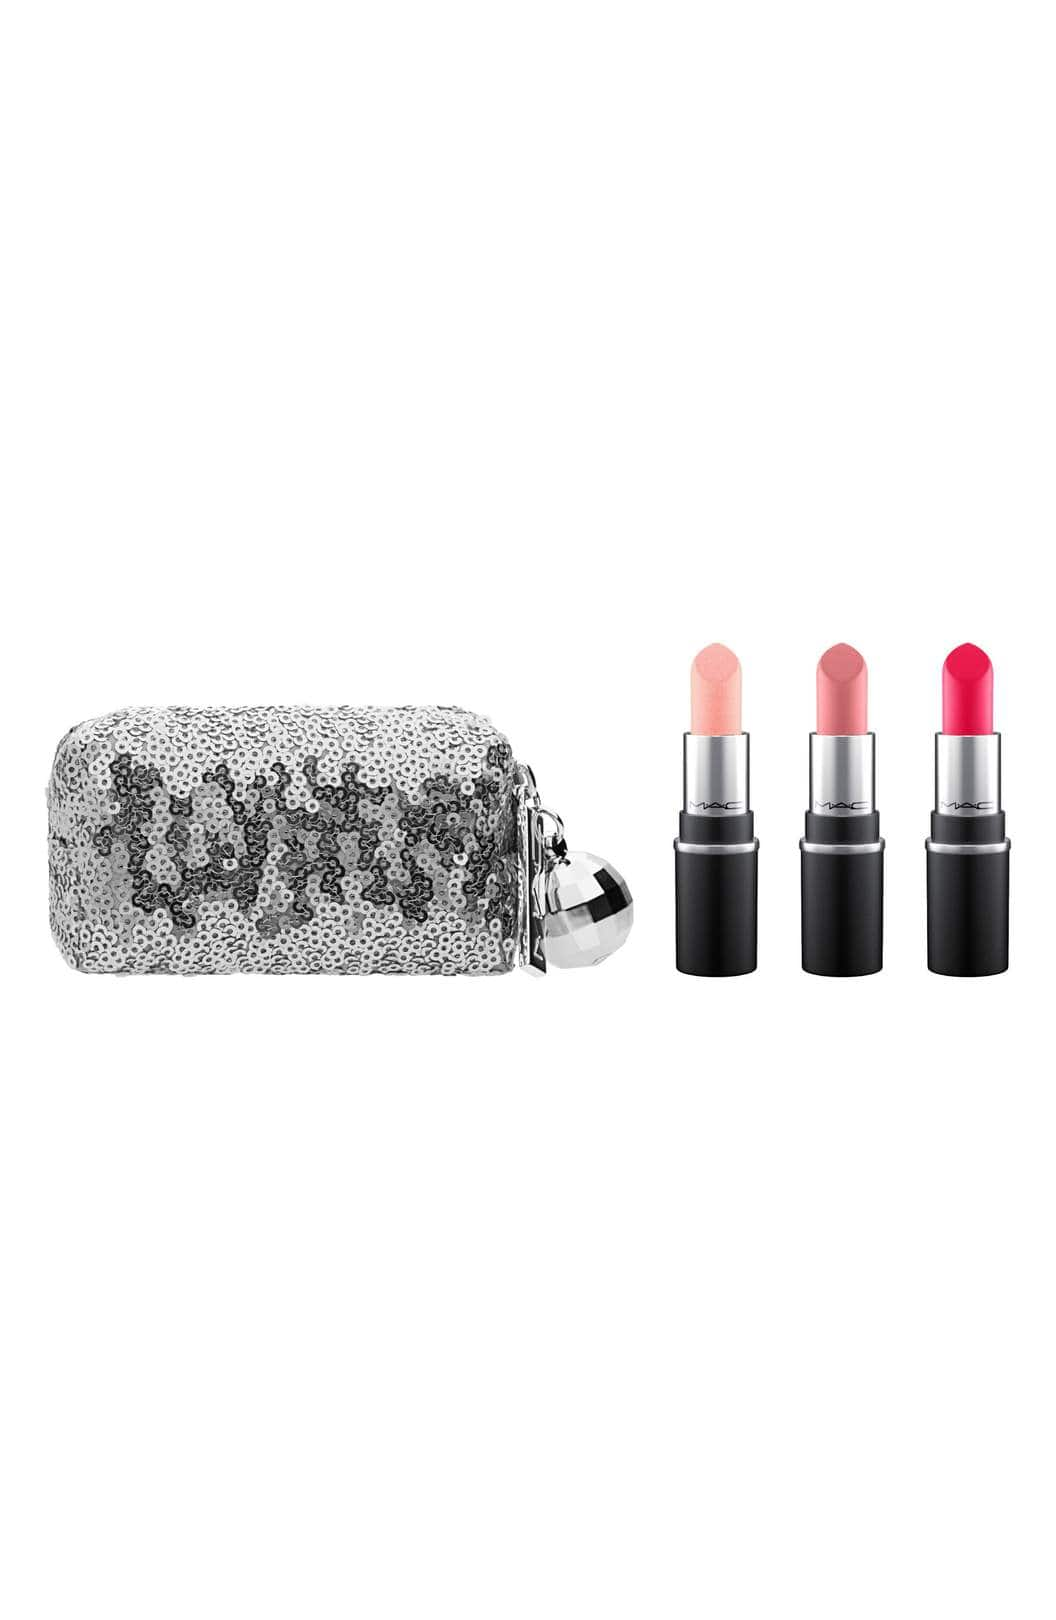 Mac Snow Ball 3-ct. Mini Lipstick or Pigment & Glitter Sets - $22.13 + Free Shipping at Nordstrom